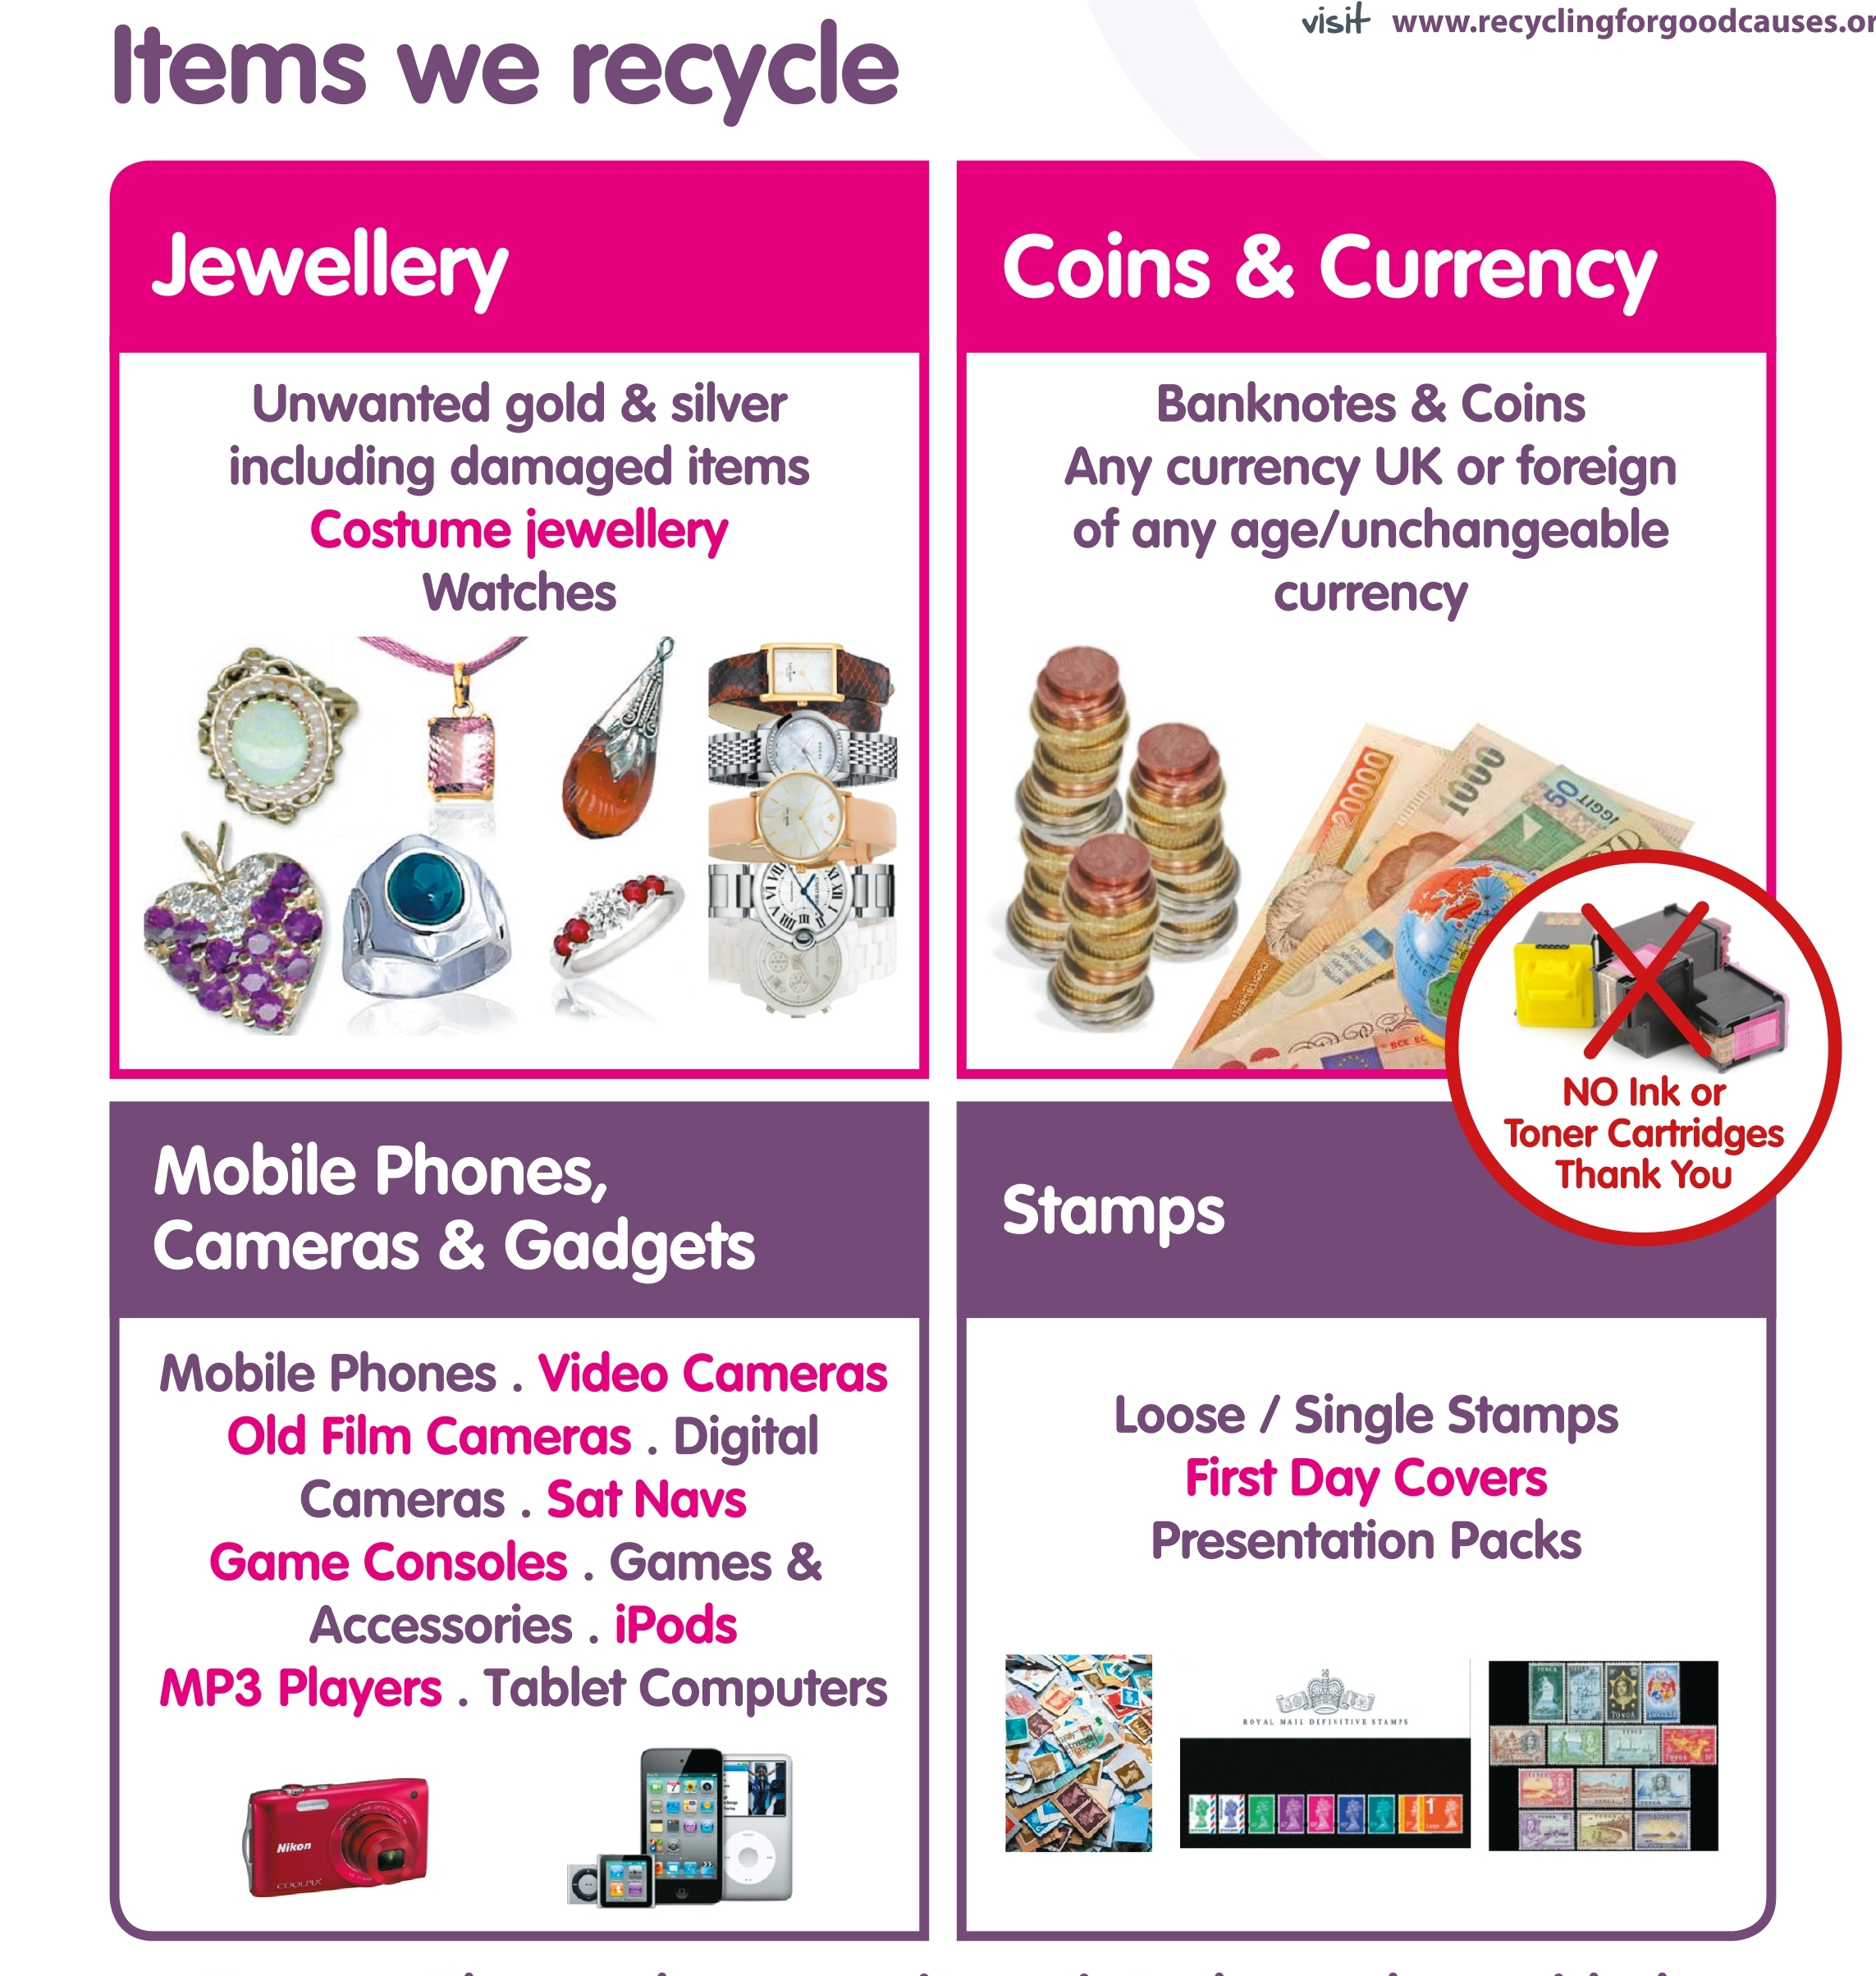 Upcycling and recycling alert - get back on the GAS!